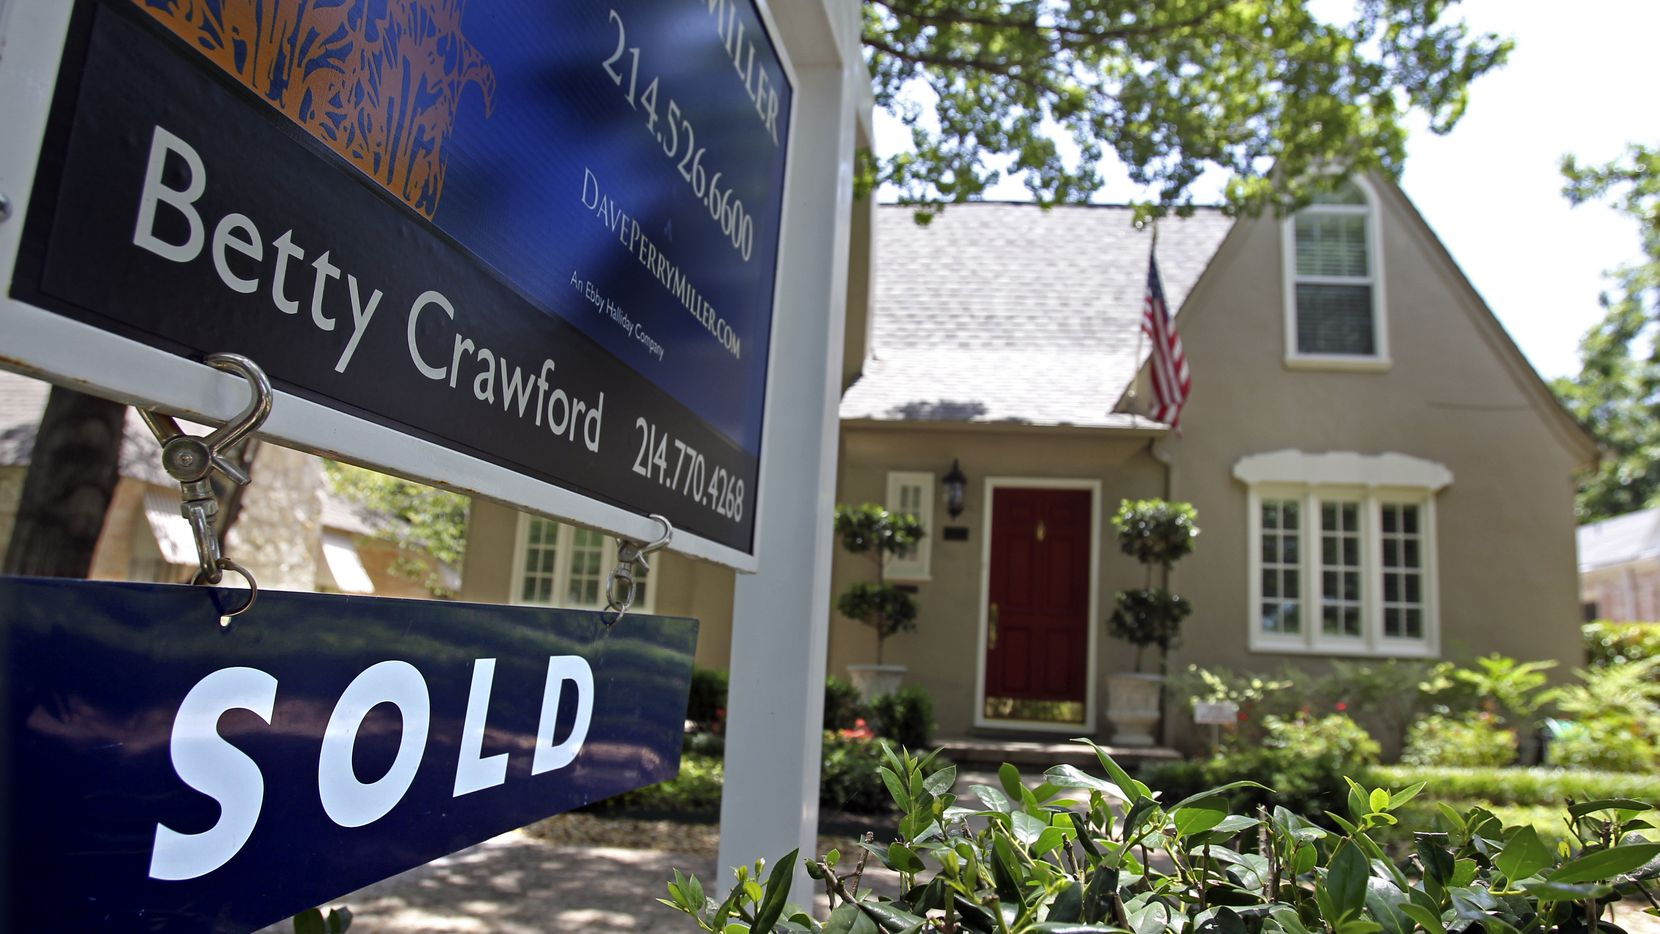 Nationwide home prices were up 5.3 percent in the third quarter.